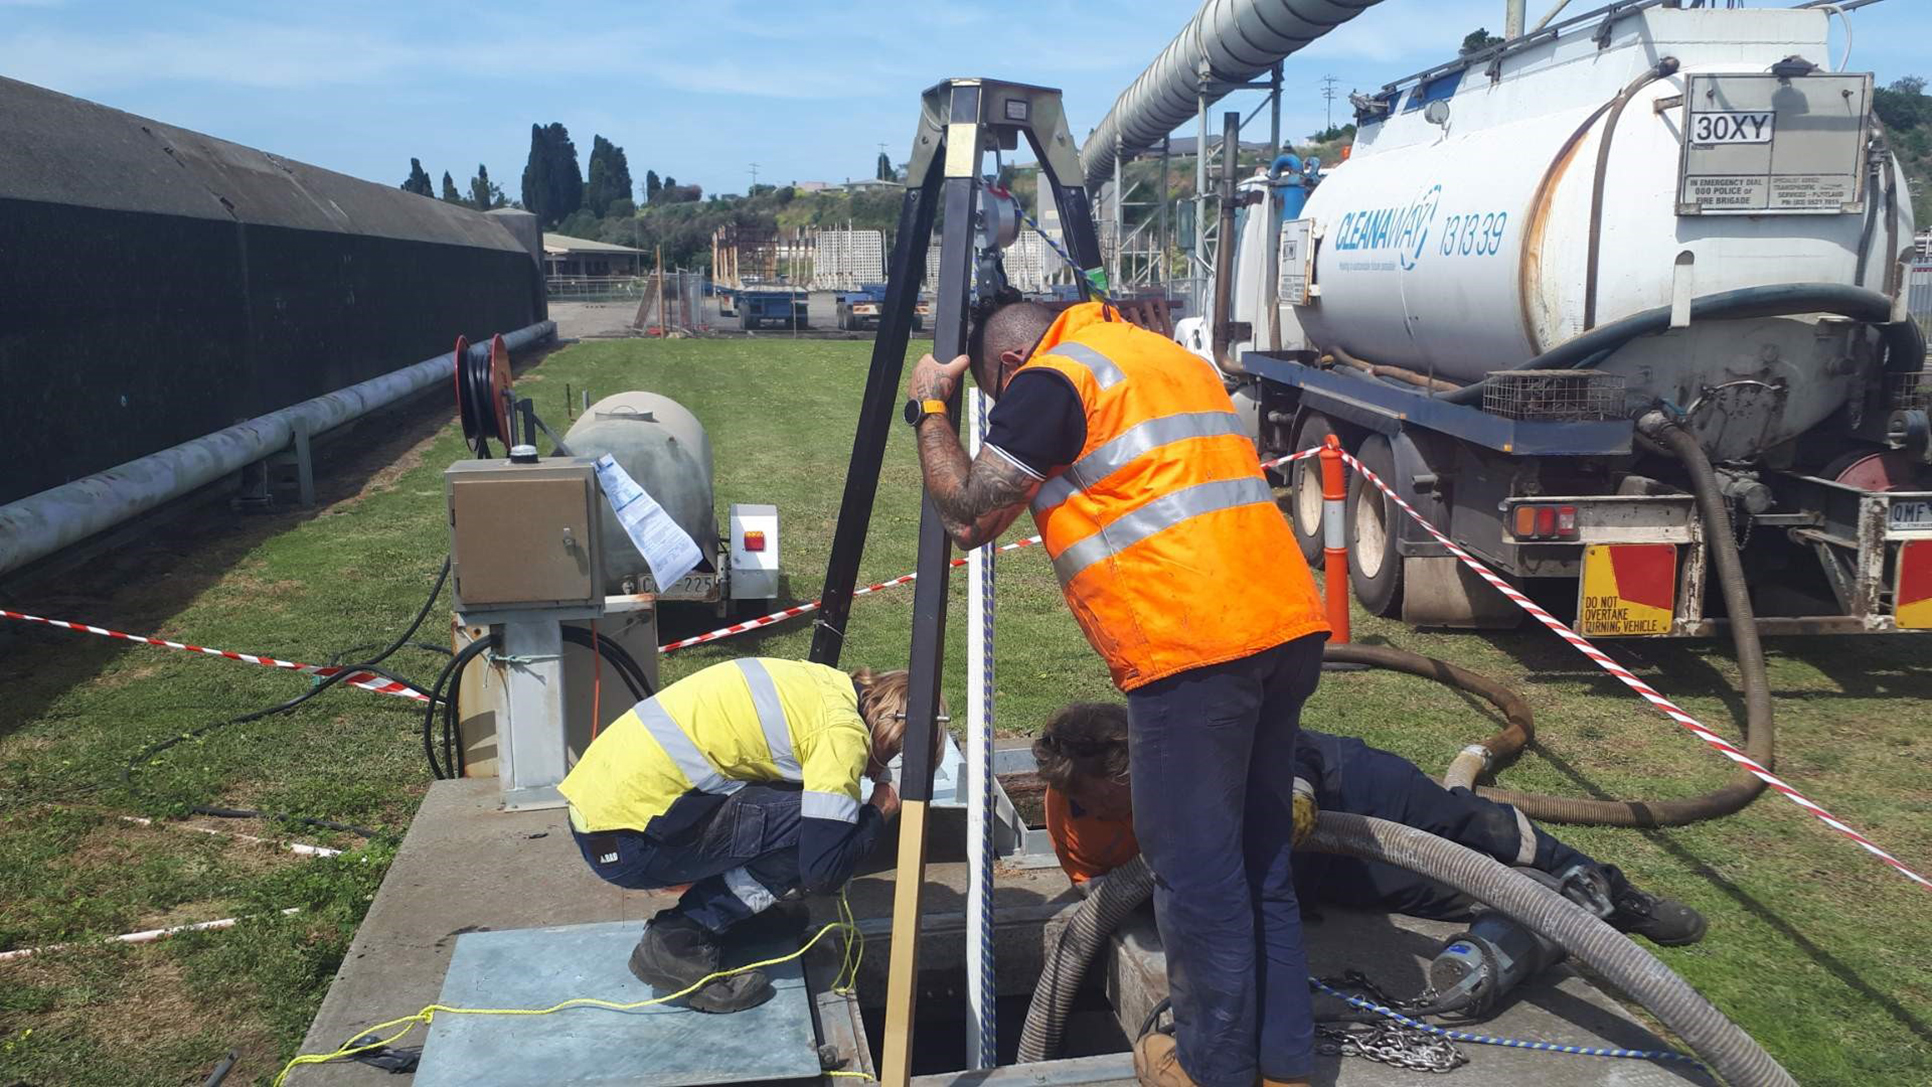 Smarter Safer Solutions undertake confined space work at the Port of Portland